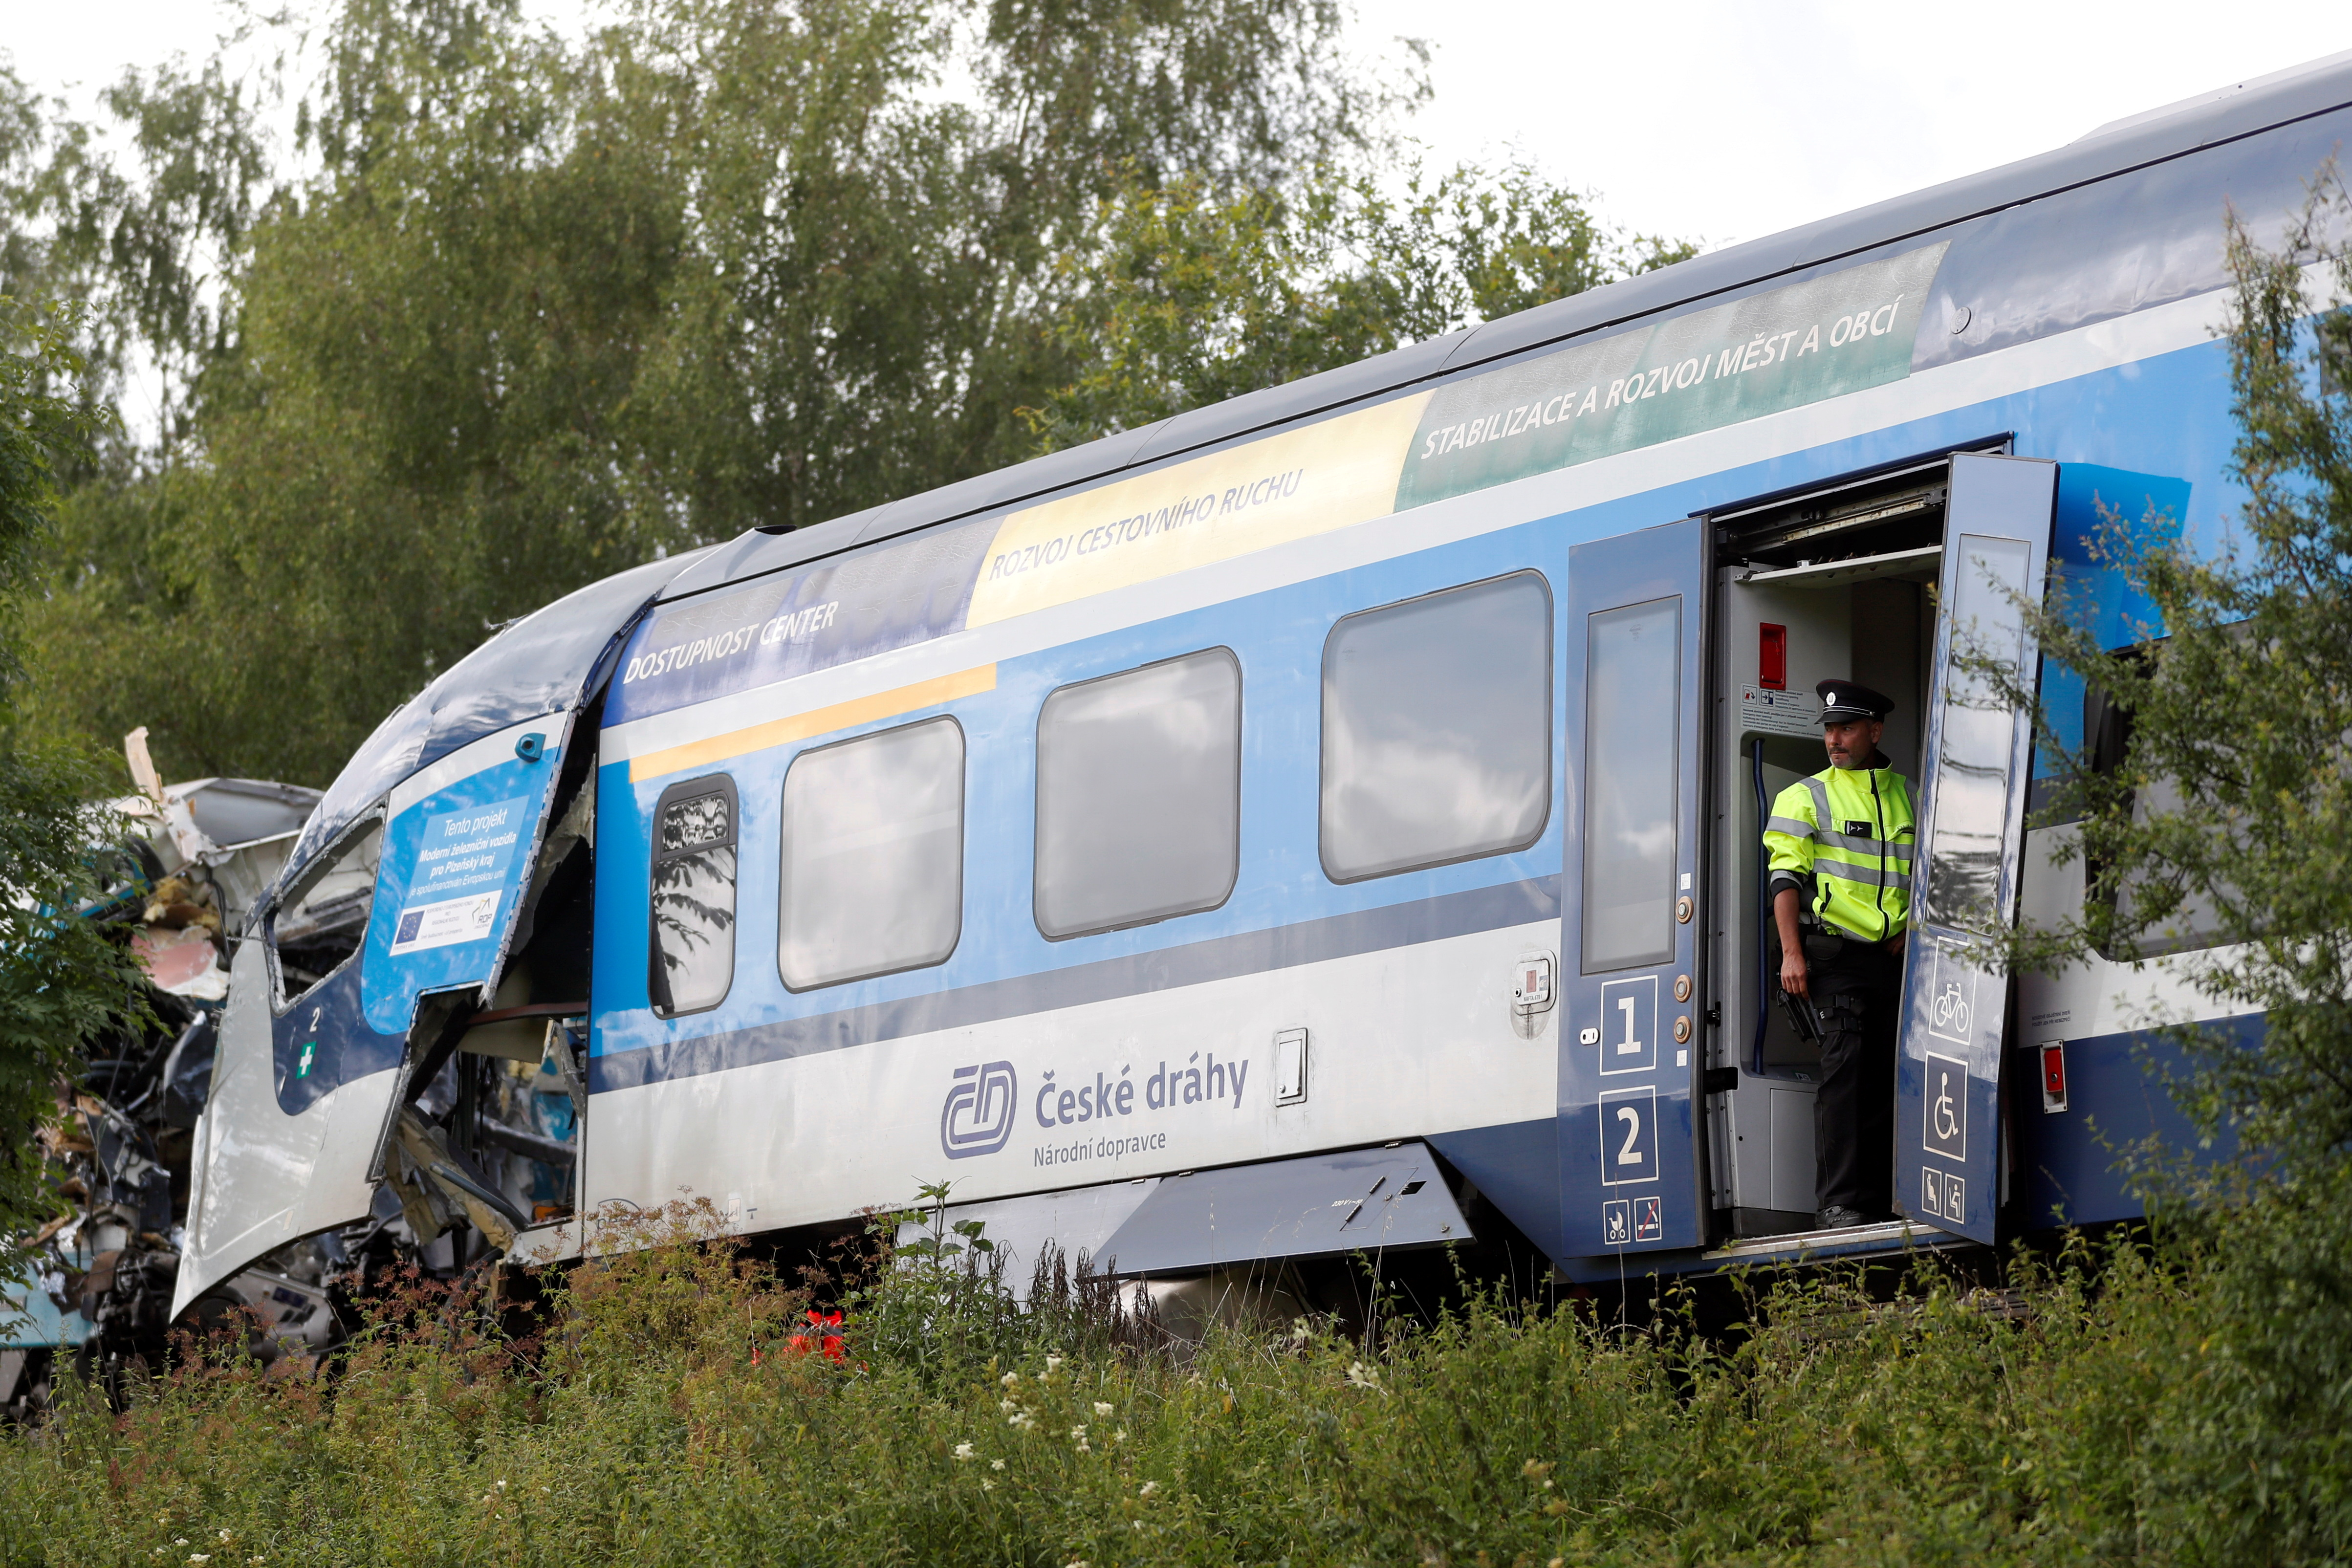 A police officer looks on from a carriage on a site of a train crash near the town of Domazlice, Czech Republic, August 4, 2021. REUTERS/David W Cerny